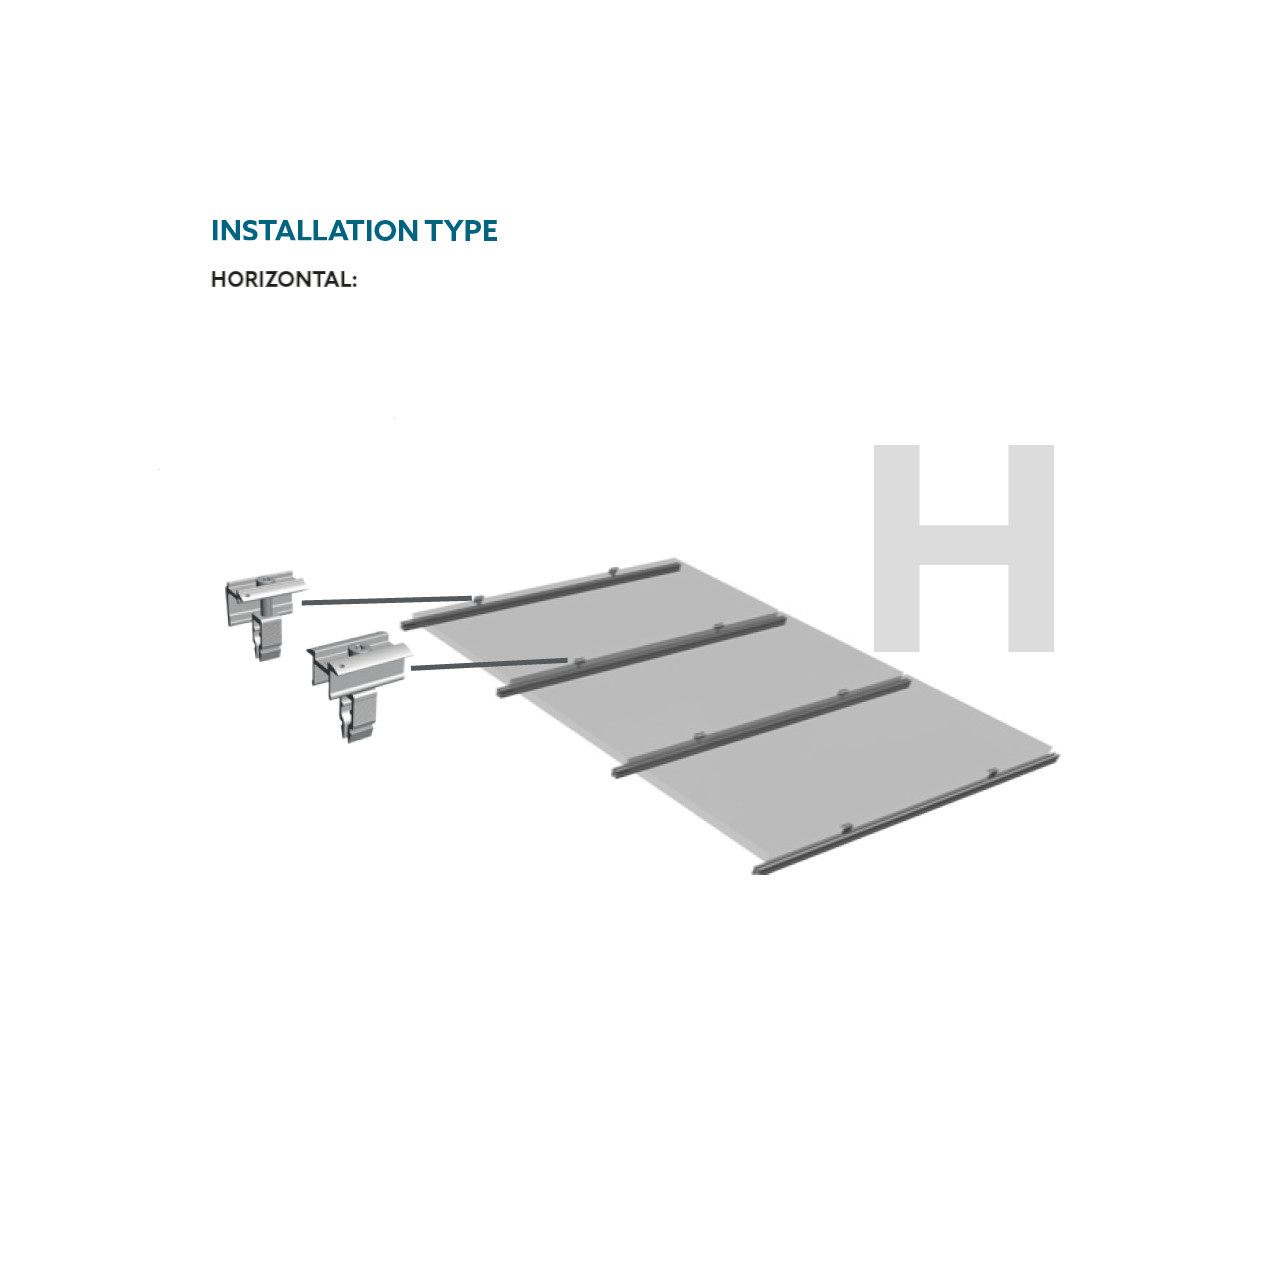 Schletter - Rapid16 Middle Clamp - Install Horizontal